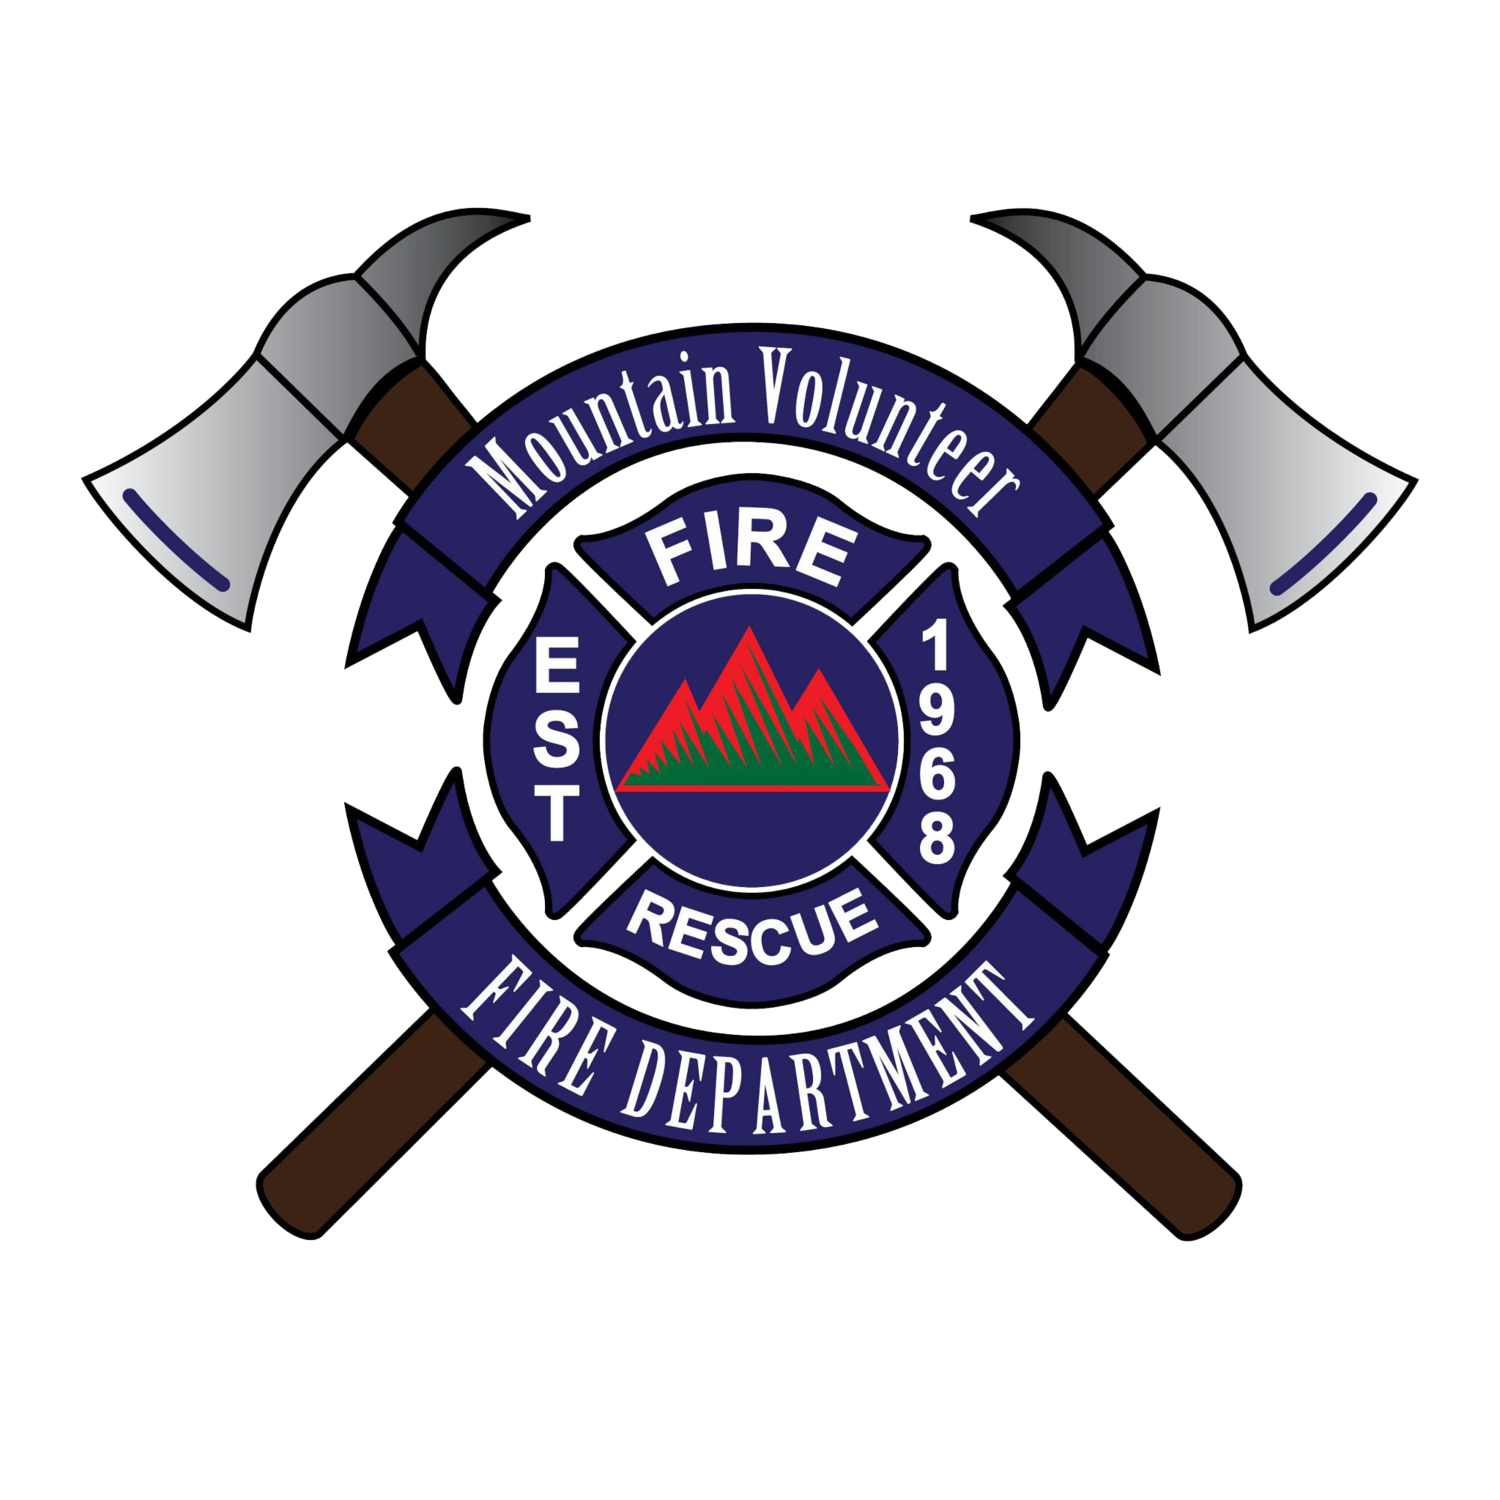 Mountain Volunteer Fire Department